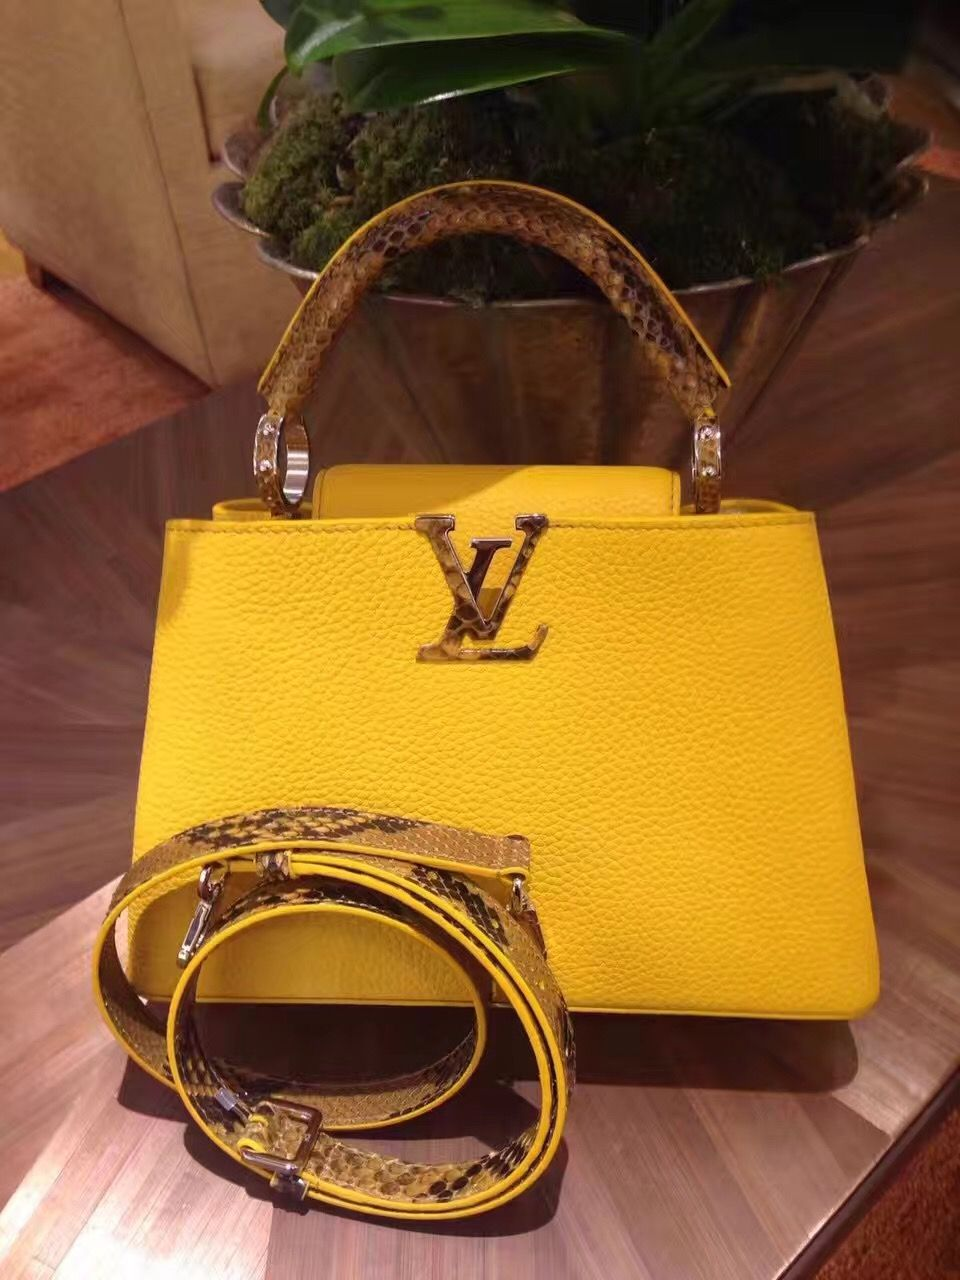 Louis Vuitton Python handle capucines bb bag yellow #louis #vuitton  #capucines